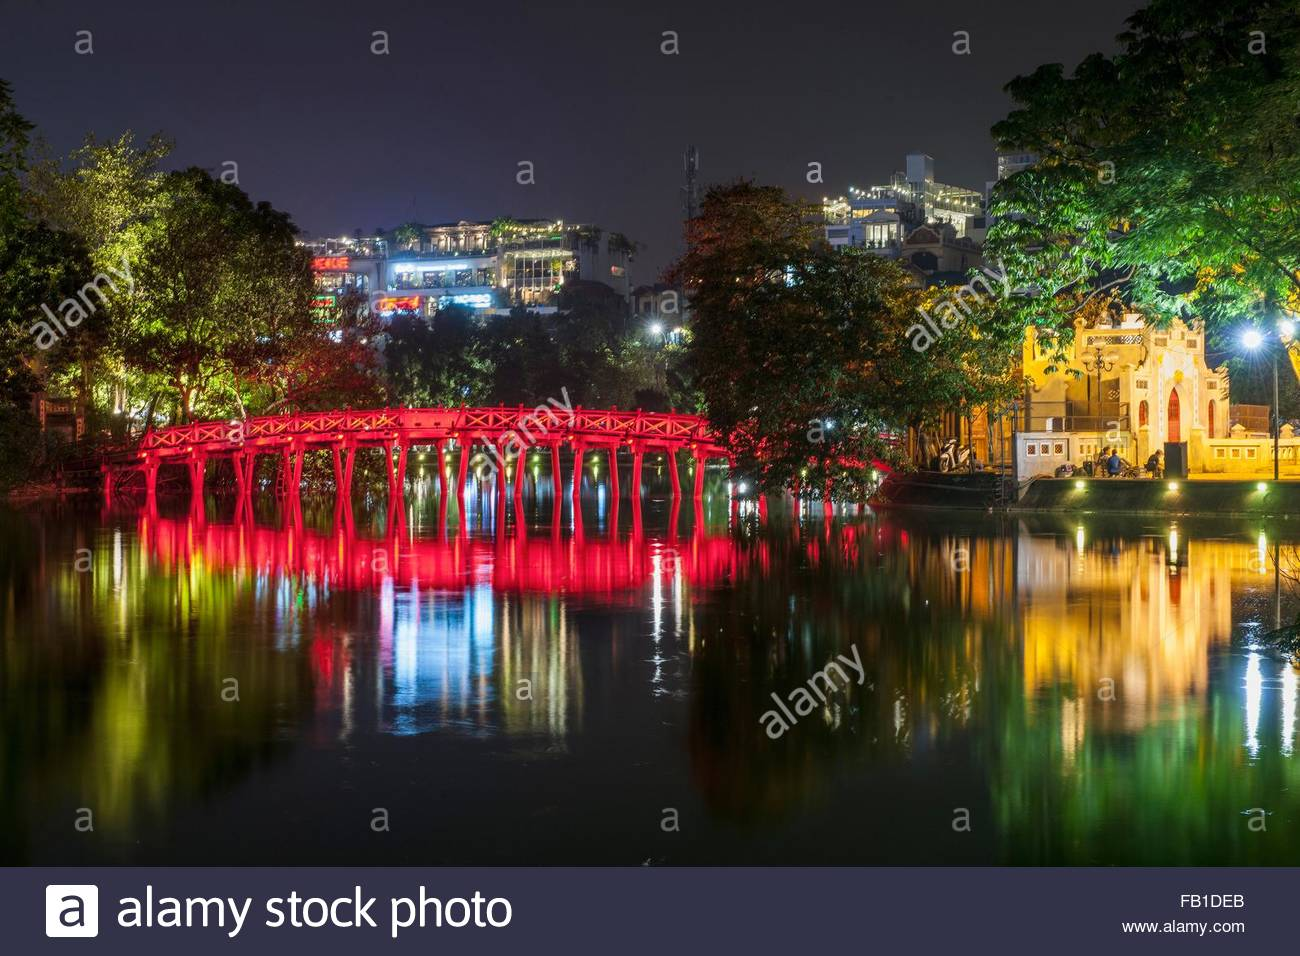 Bridge of the rising Sun on Hoan Kiem Lake at night, Hanoi, Vietnam - Stock Image